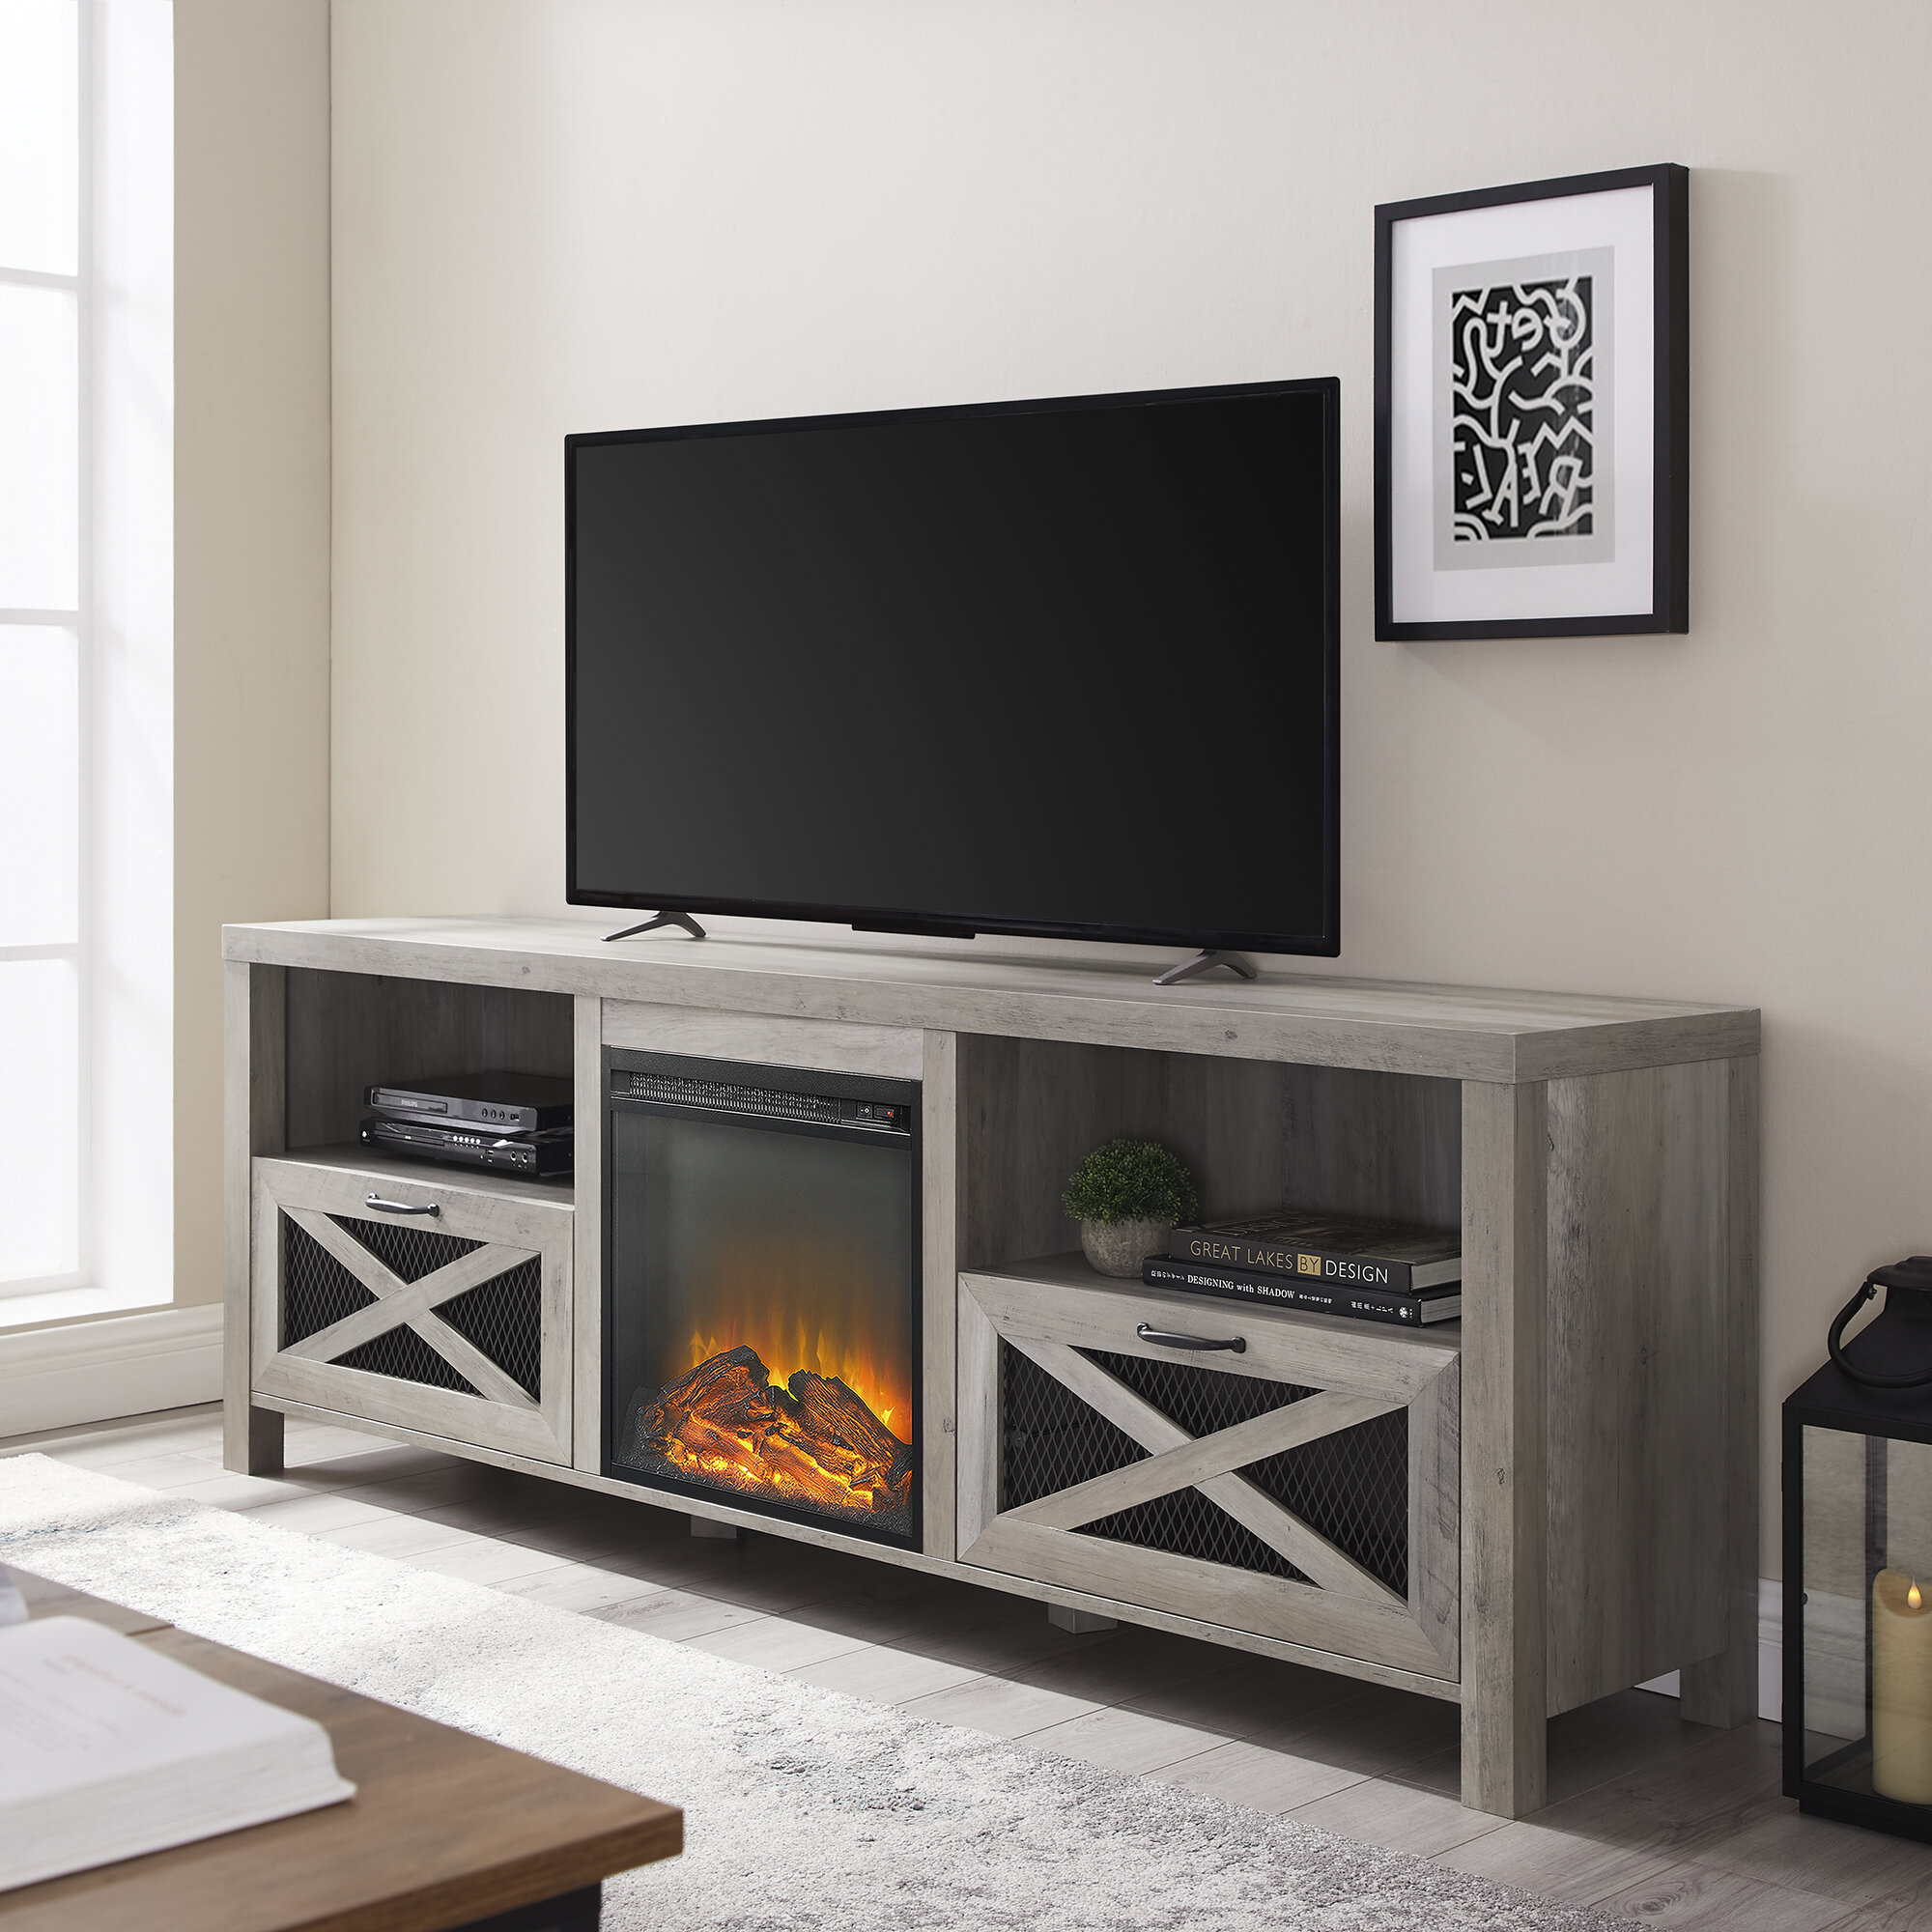 """Rustic Tv Stand with Electric Fireplace Luxury Tansey Tv Stand for Tvs Up to 70"""" with Electric Fireplace"""